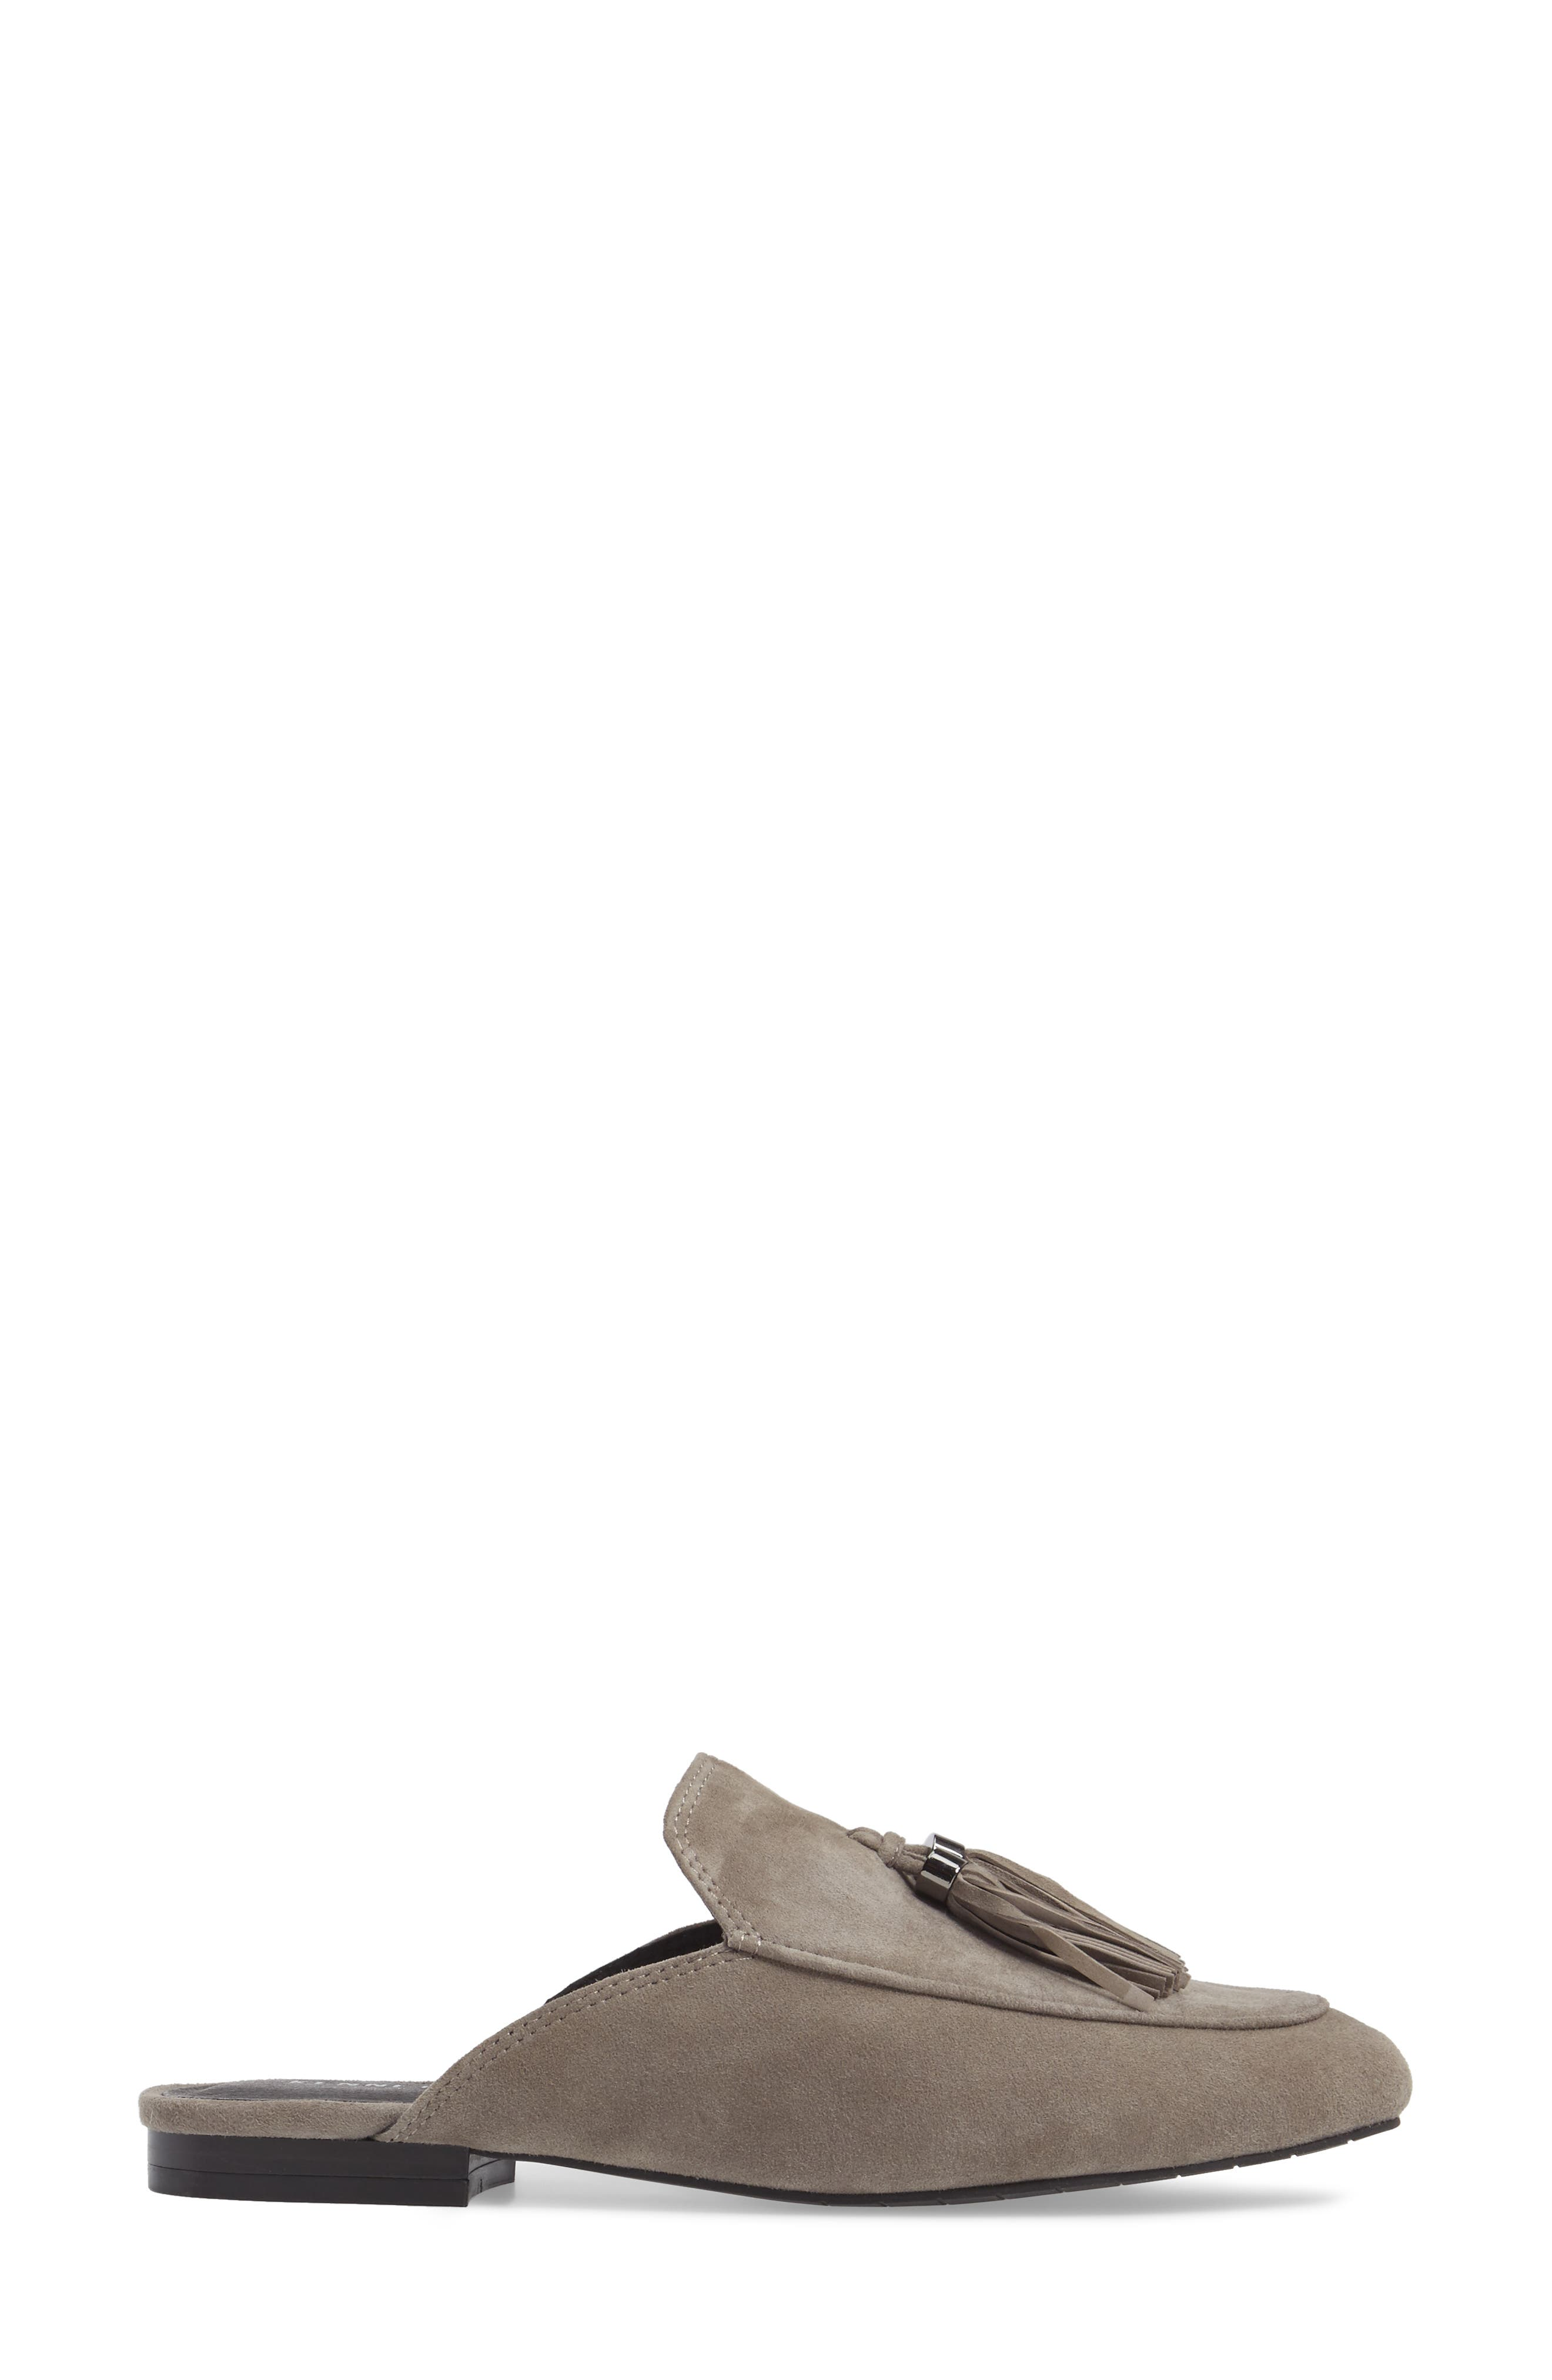 Alternate Image 3  - Kenneth Cole New York Whinnie Loafer Mule (Women)